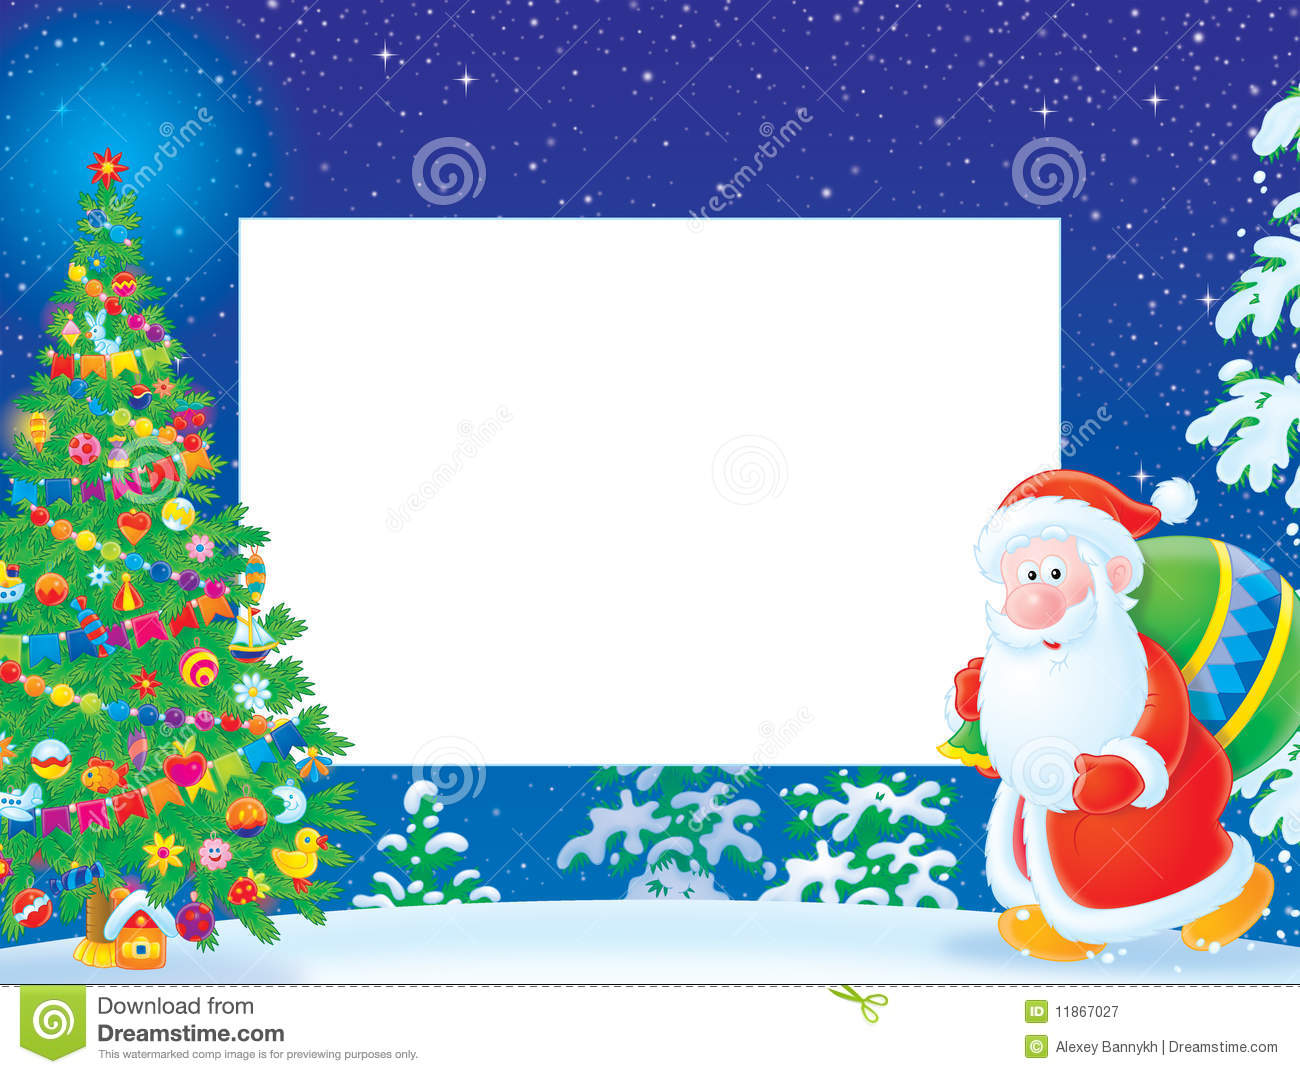 Christmas Frame Border With Santa Claus Stock Illustration